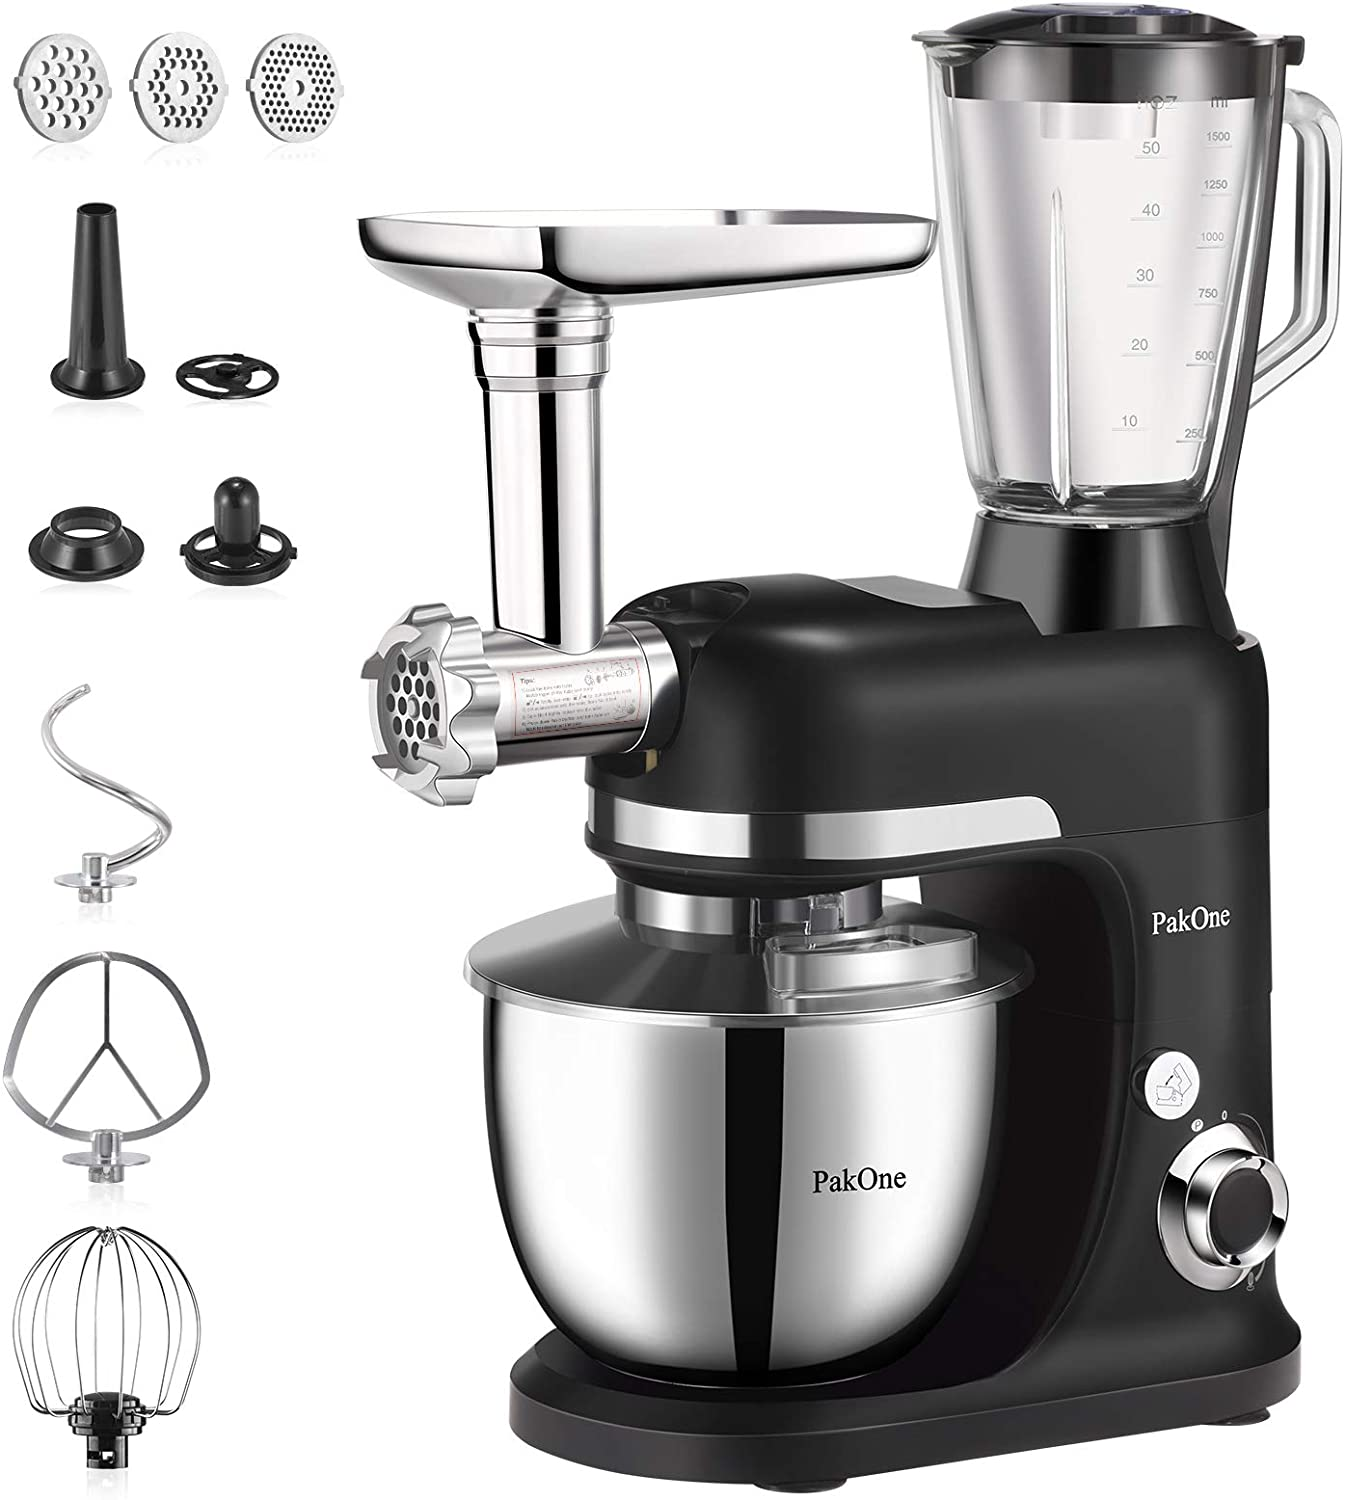 BONISO Stand Mixer,6.5-QT 800W 6-Speed Tilt-Head Food Mixer, Multifunctional Kitchen Electric Mixer with Dough Hook, Wire Whip, Beater,Meat Grinder and Blender